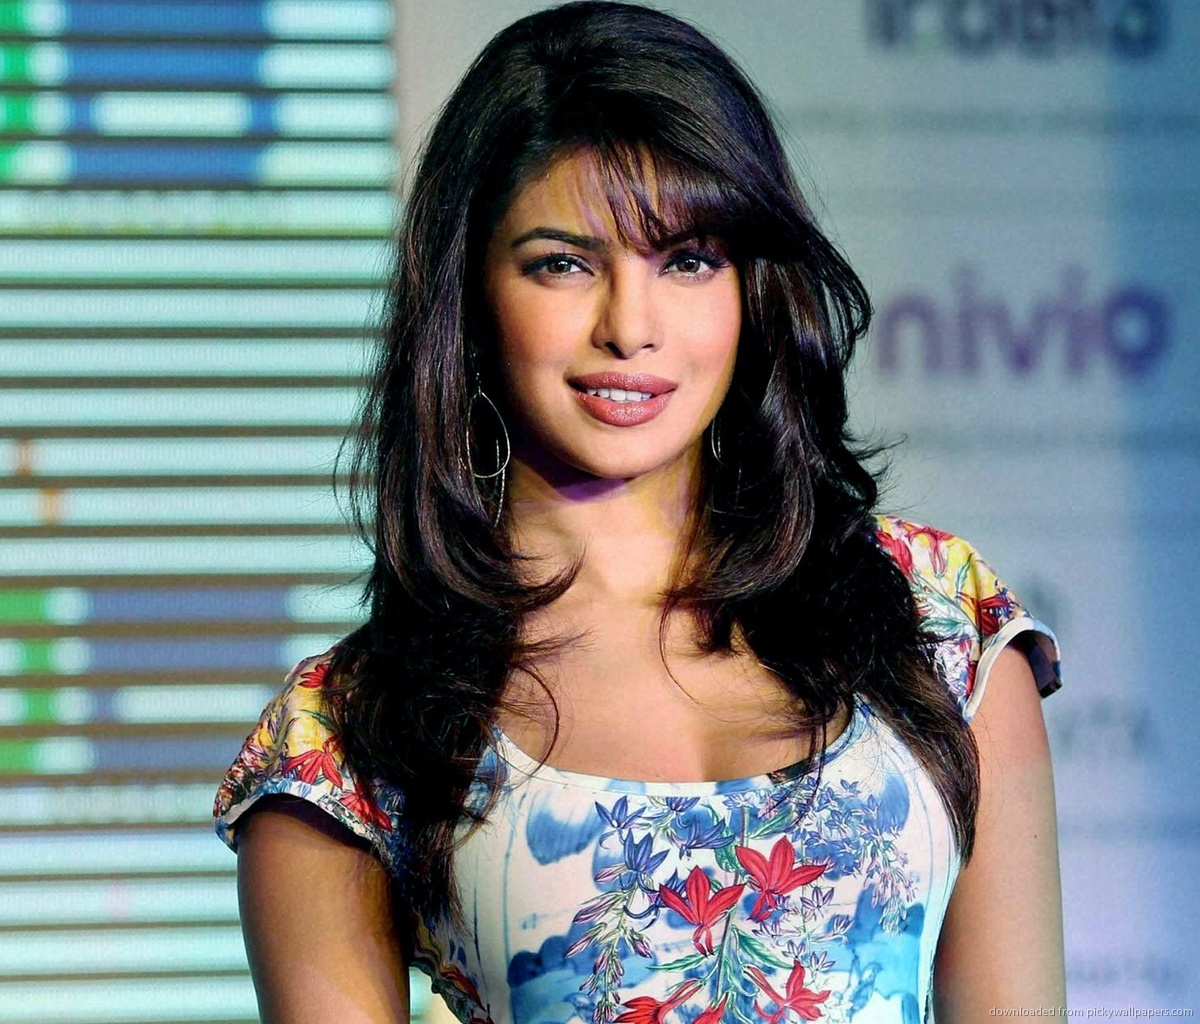 Top 10 Sexiest And Hottest Bollywood Actresses Top 10